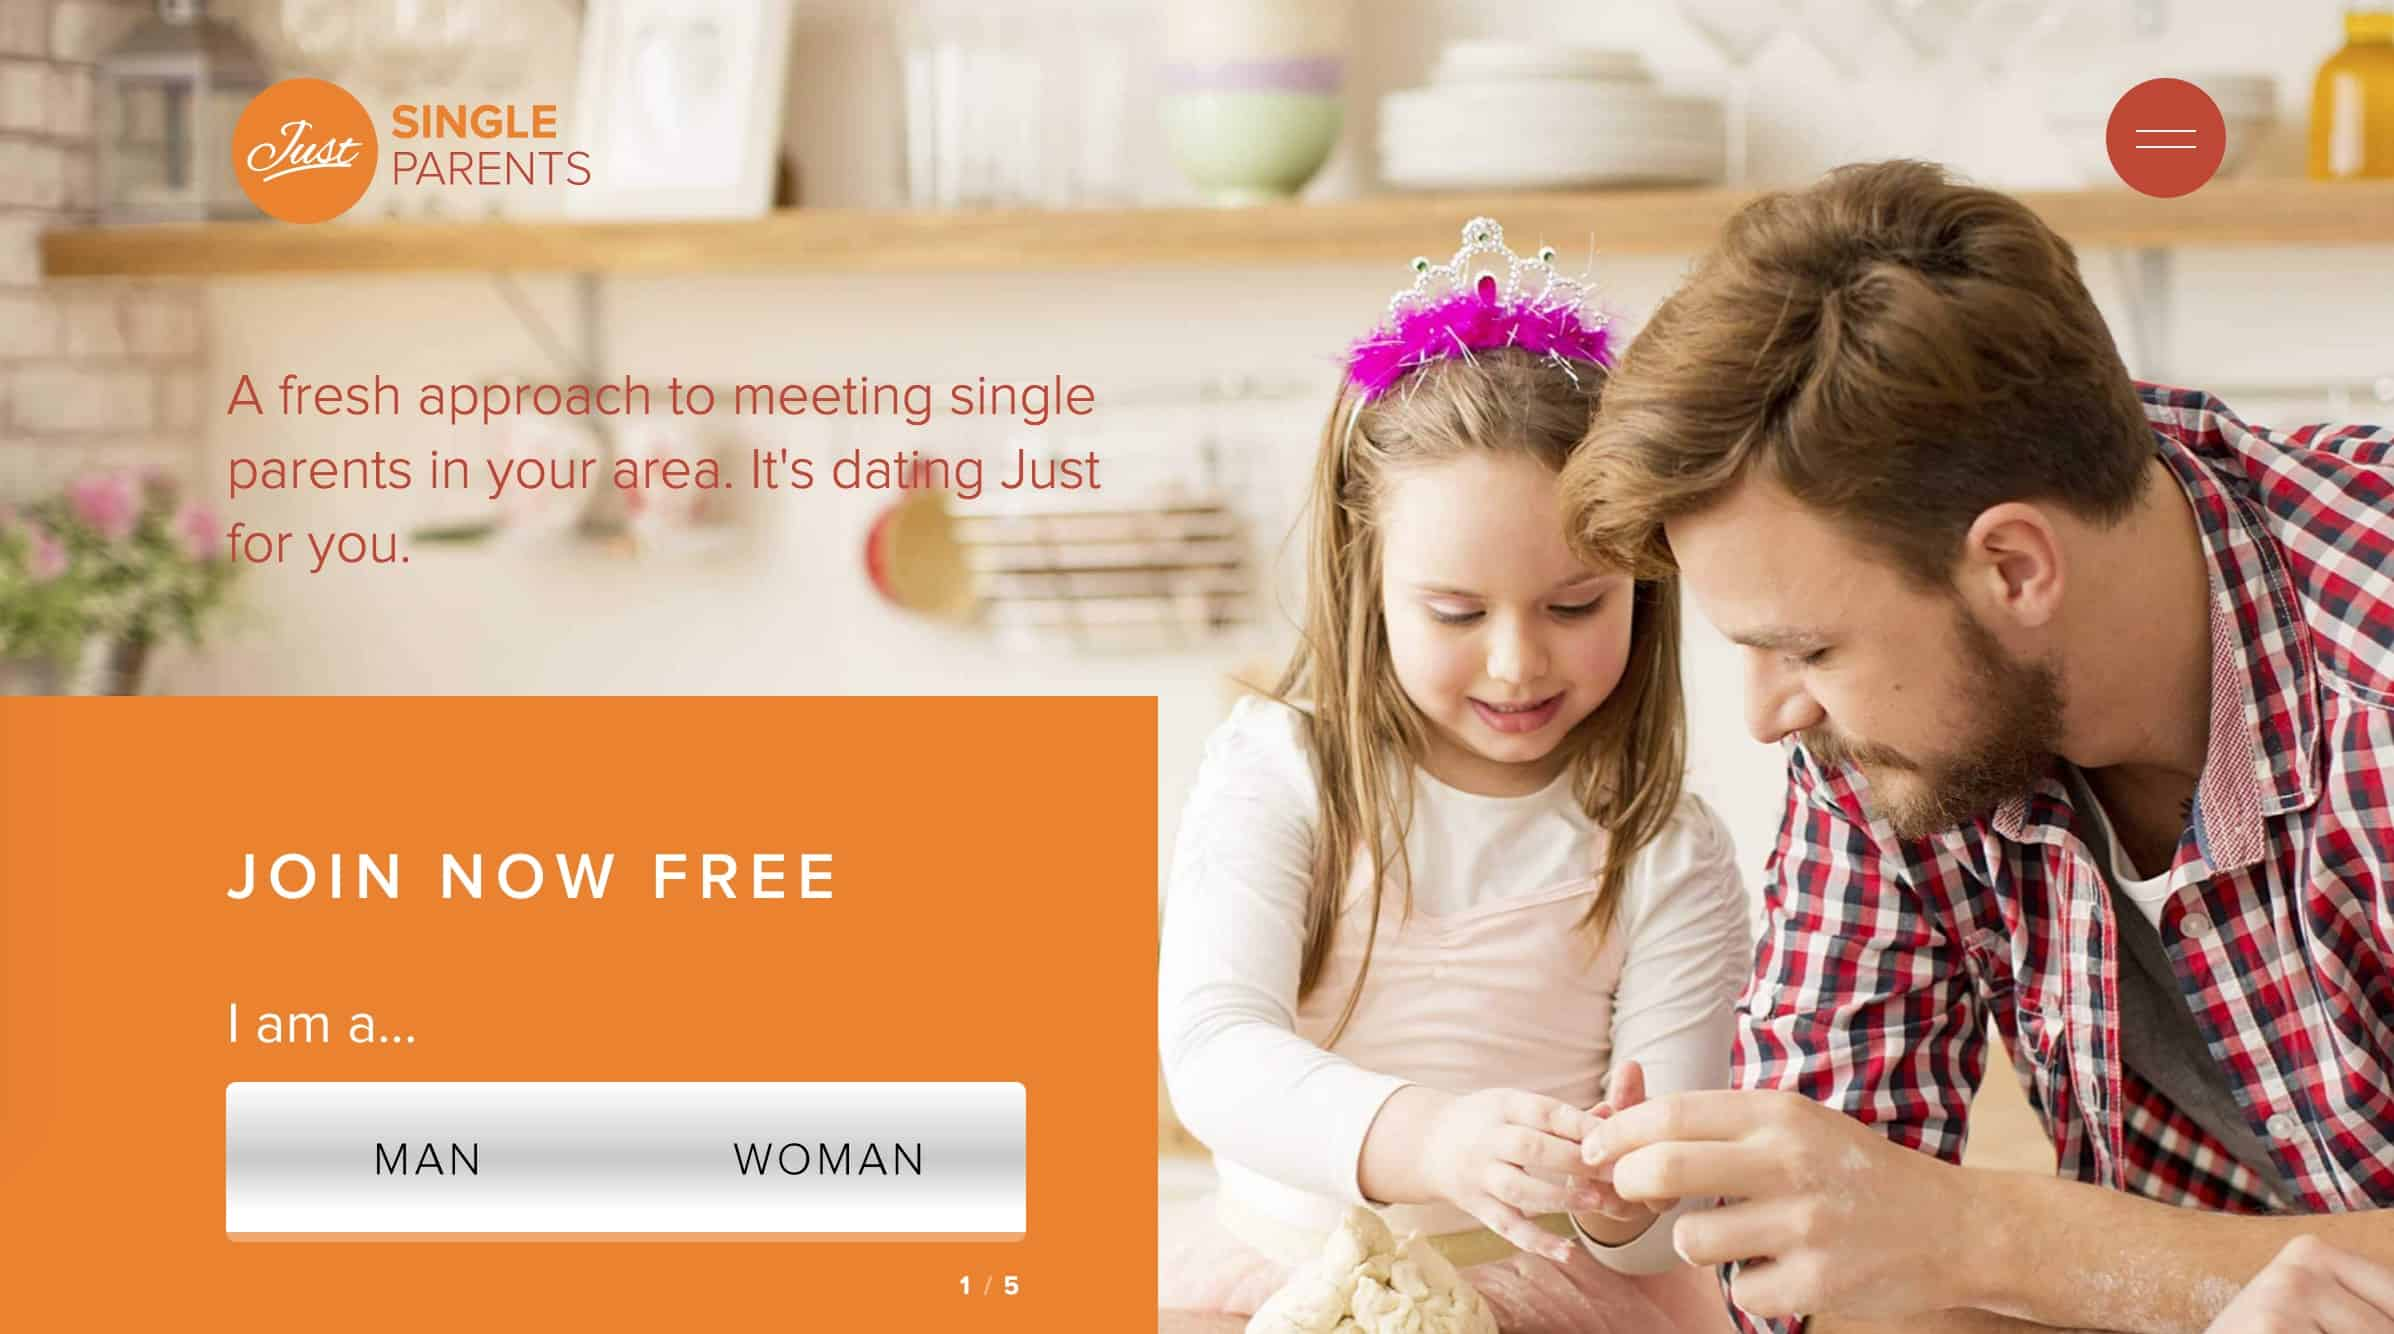 nonantum single parent dating site The beauty of online dating is that you can be explicitly clear about being a single parent this way, when it's time for the date, they'll already know that you have kids use your profile to explain that you're looking for a match who loves to be around kids.